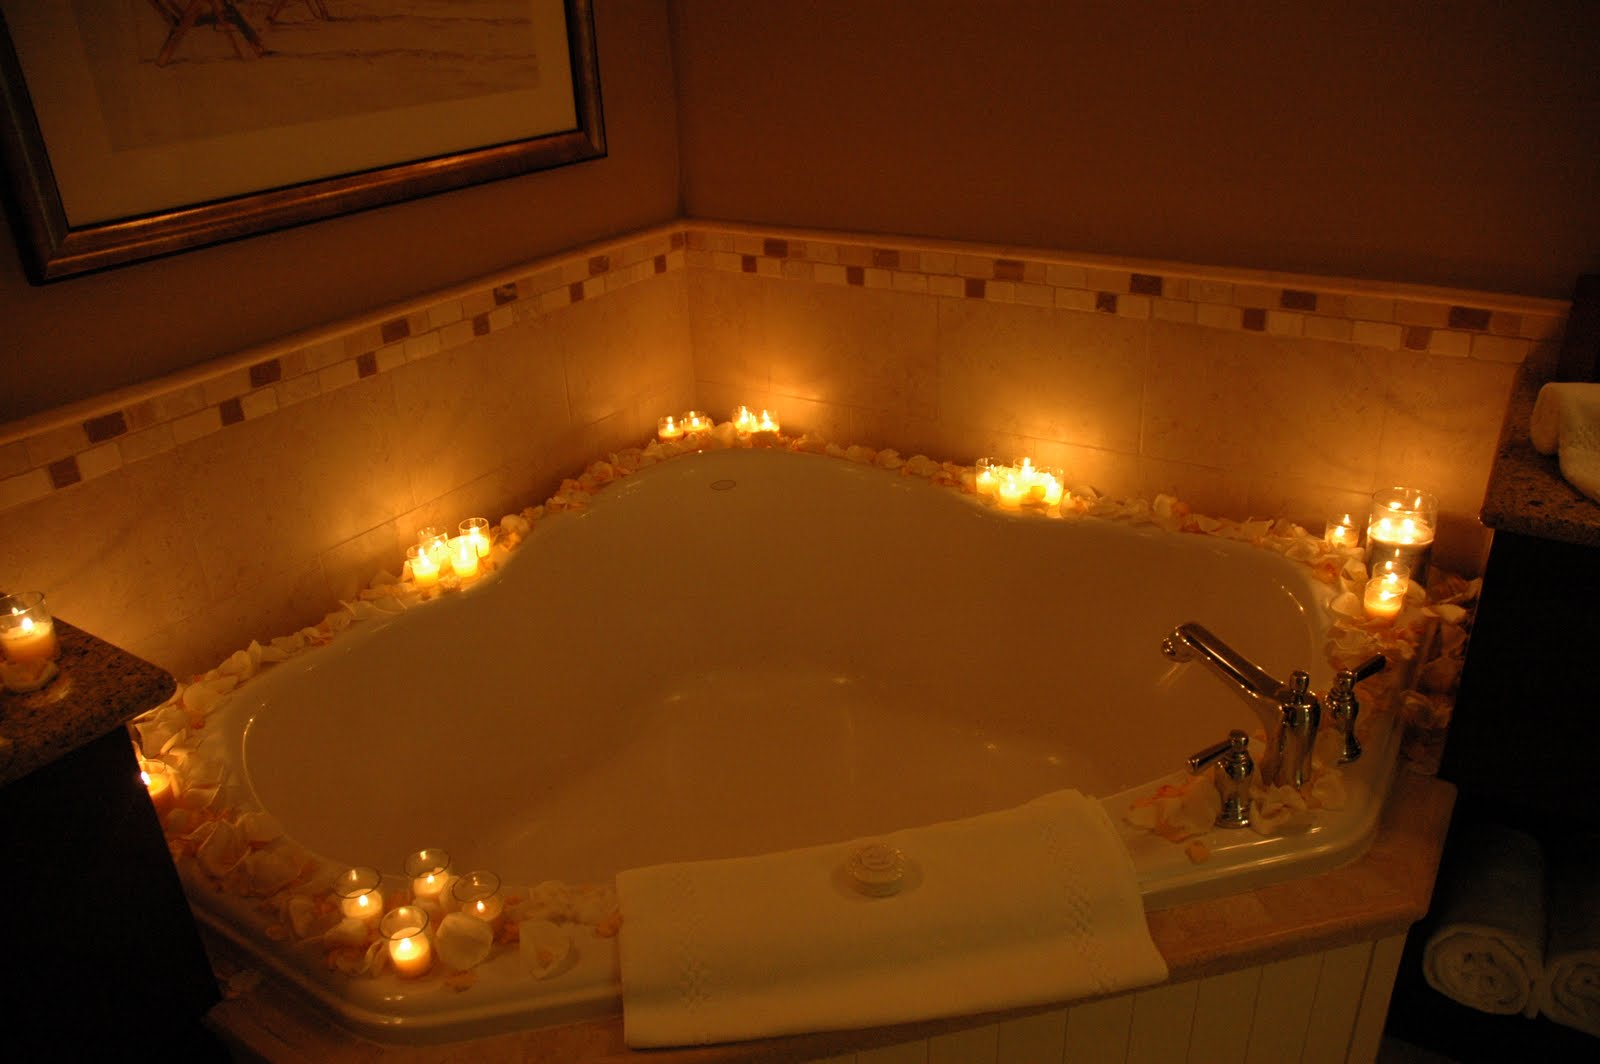 Your Honeymoon Suite At The Sandpearl Decorated With Flowers And Candles